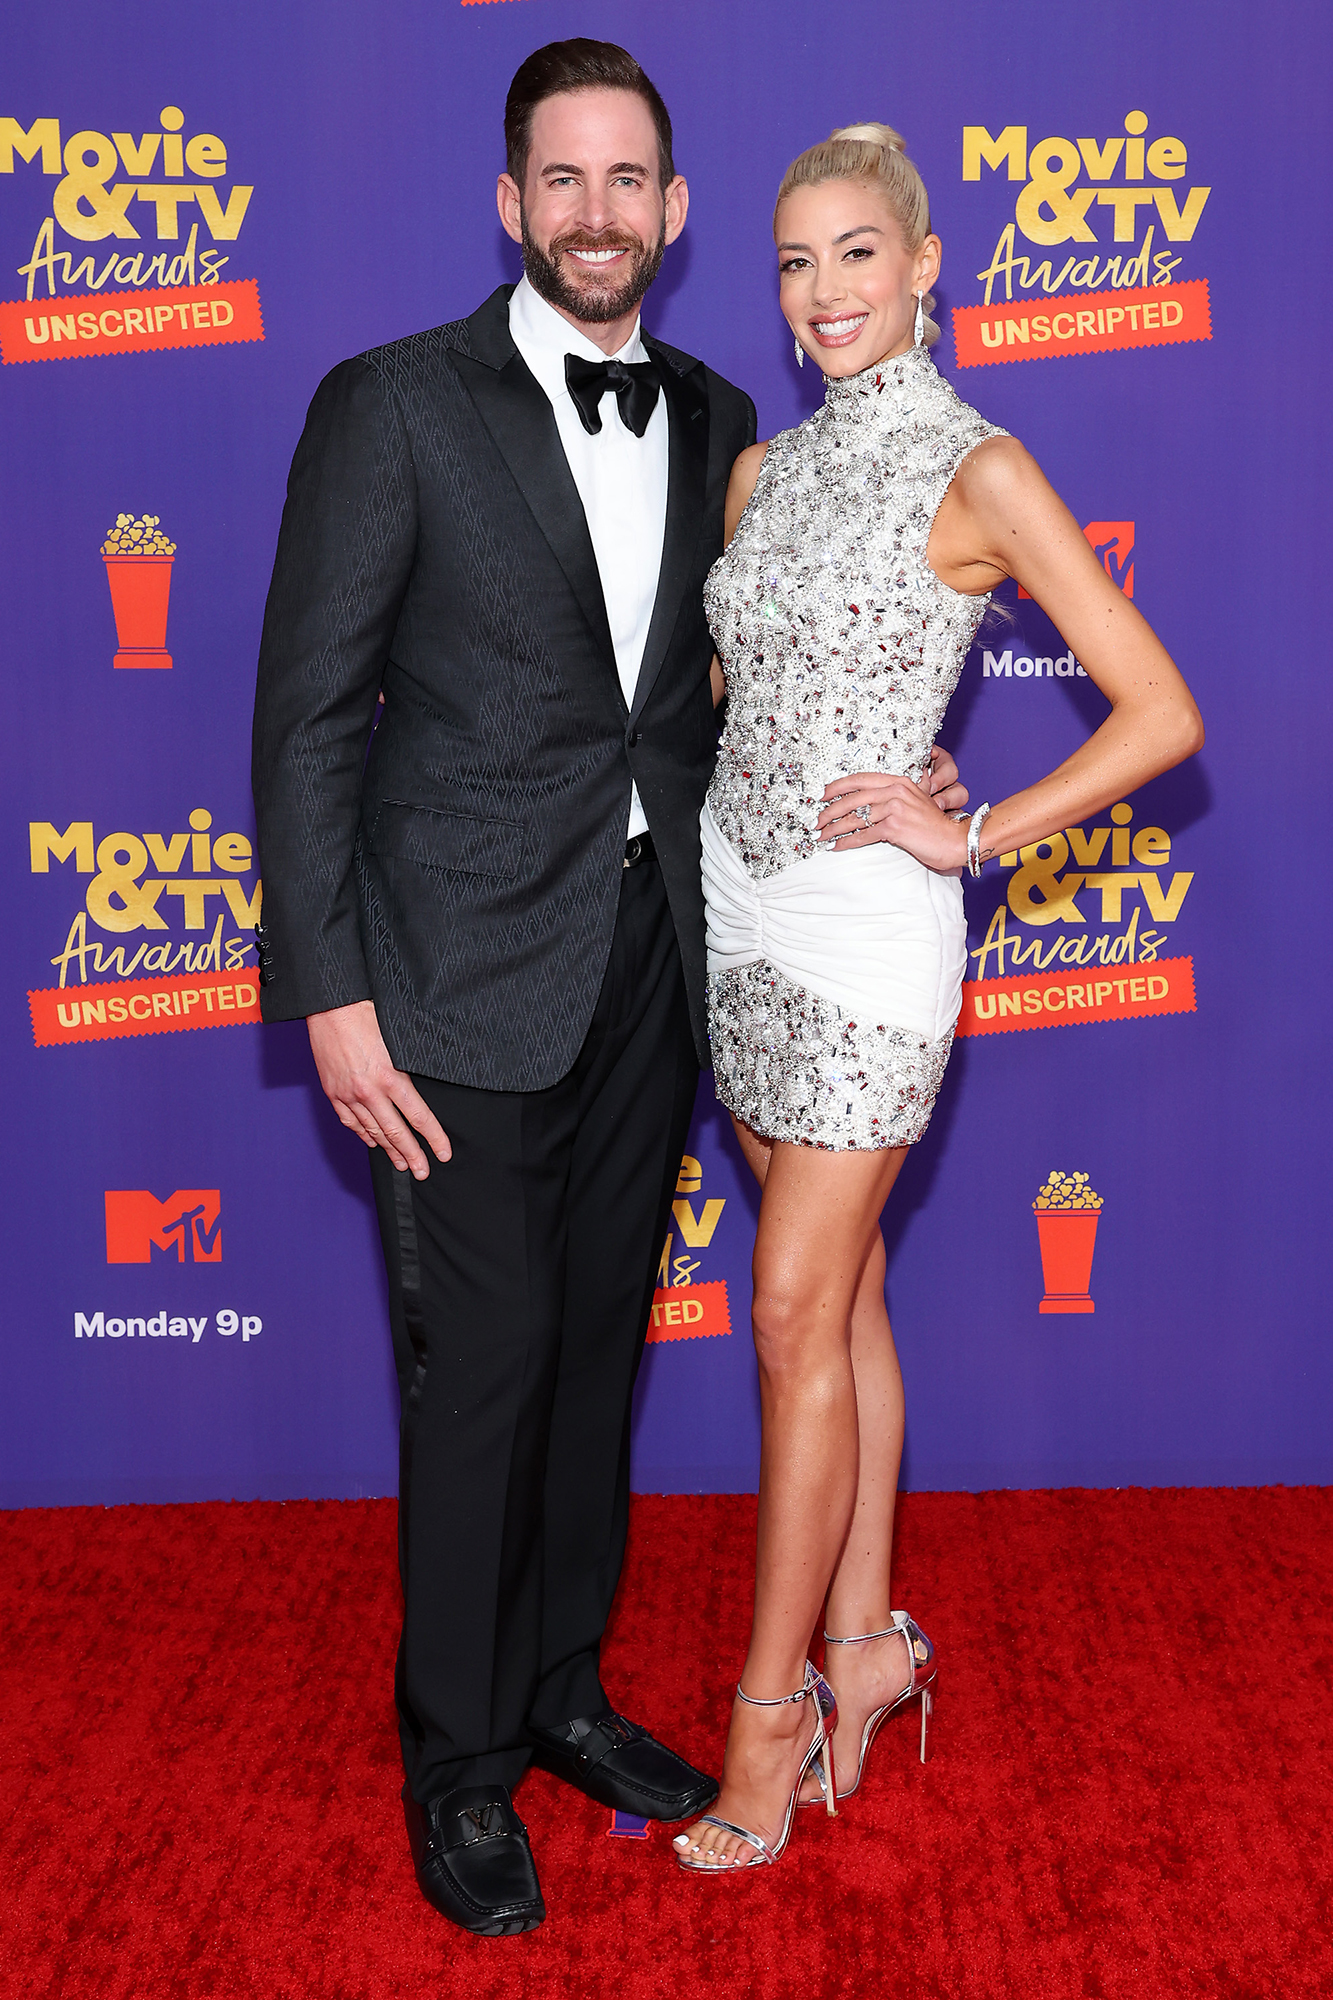 Tarek El Moussa and Heather Rae Young -- 2021 MTV Movie & TV Awards: UNSCRIPTED - Arrivals